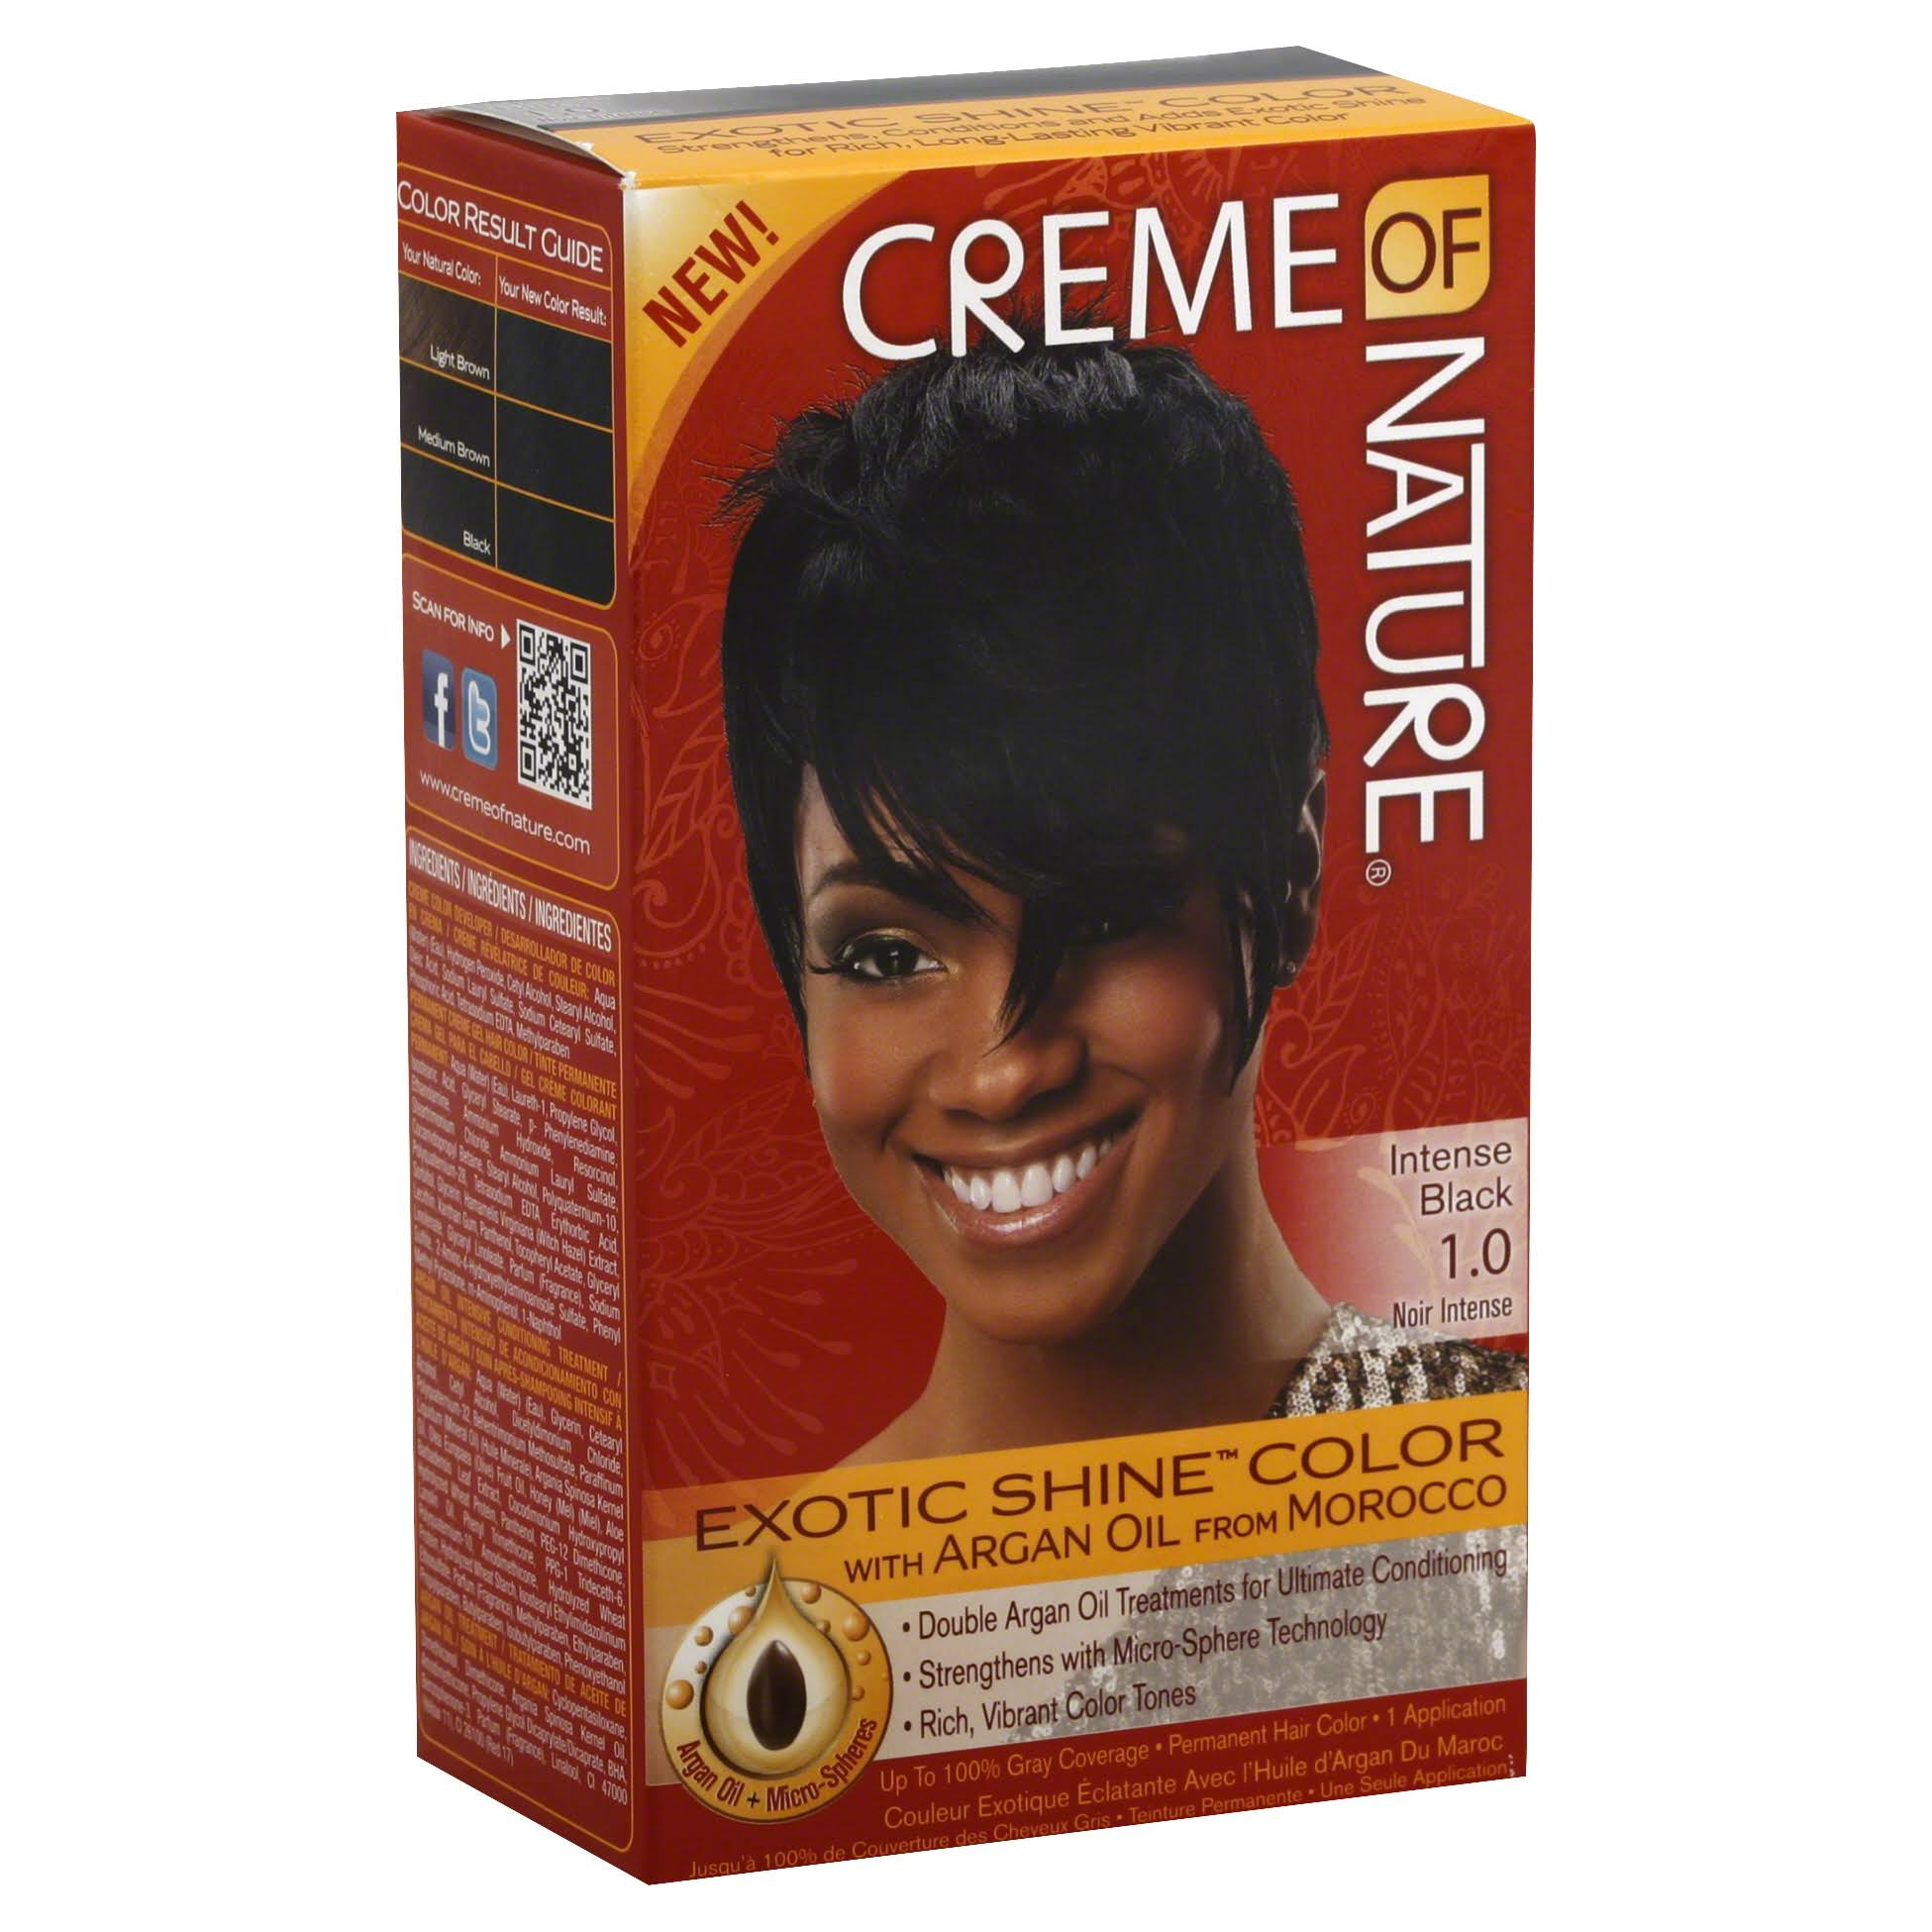 Creme of Nature Exotic Shine Color Permanent Hair Color - Intense Black 1.0